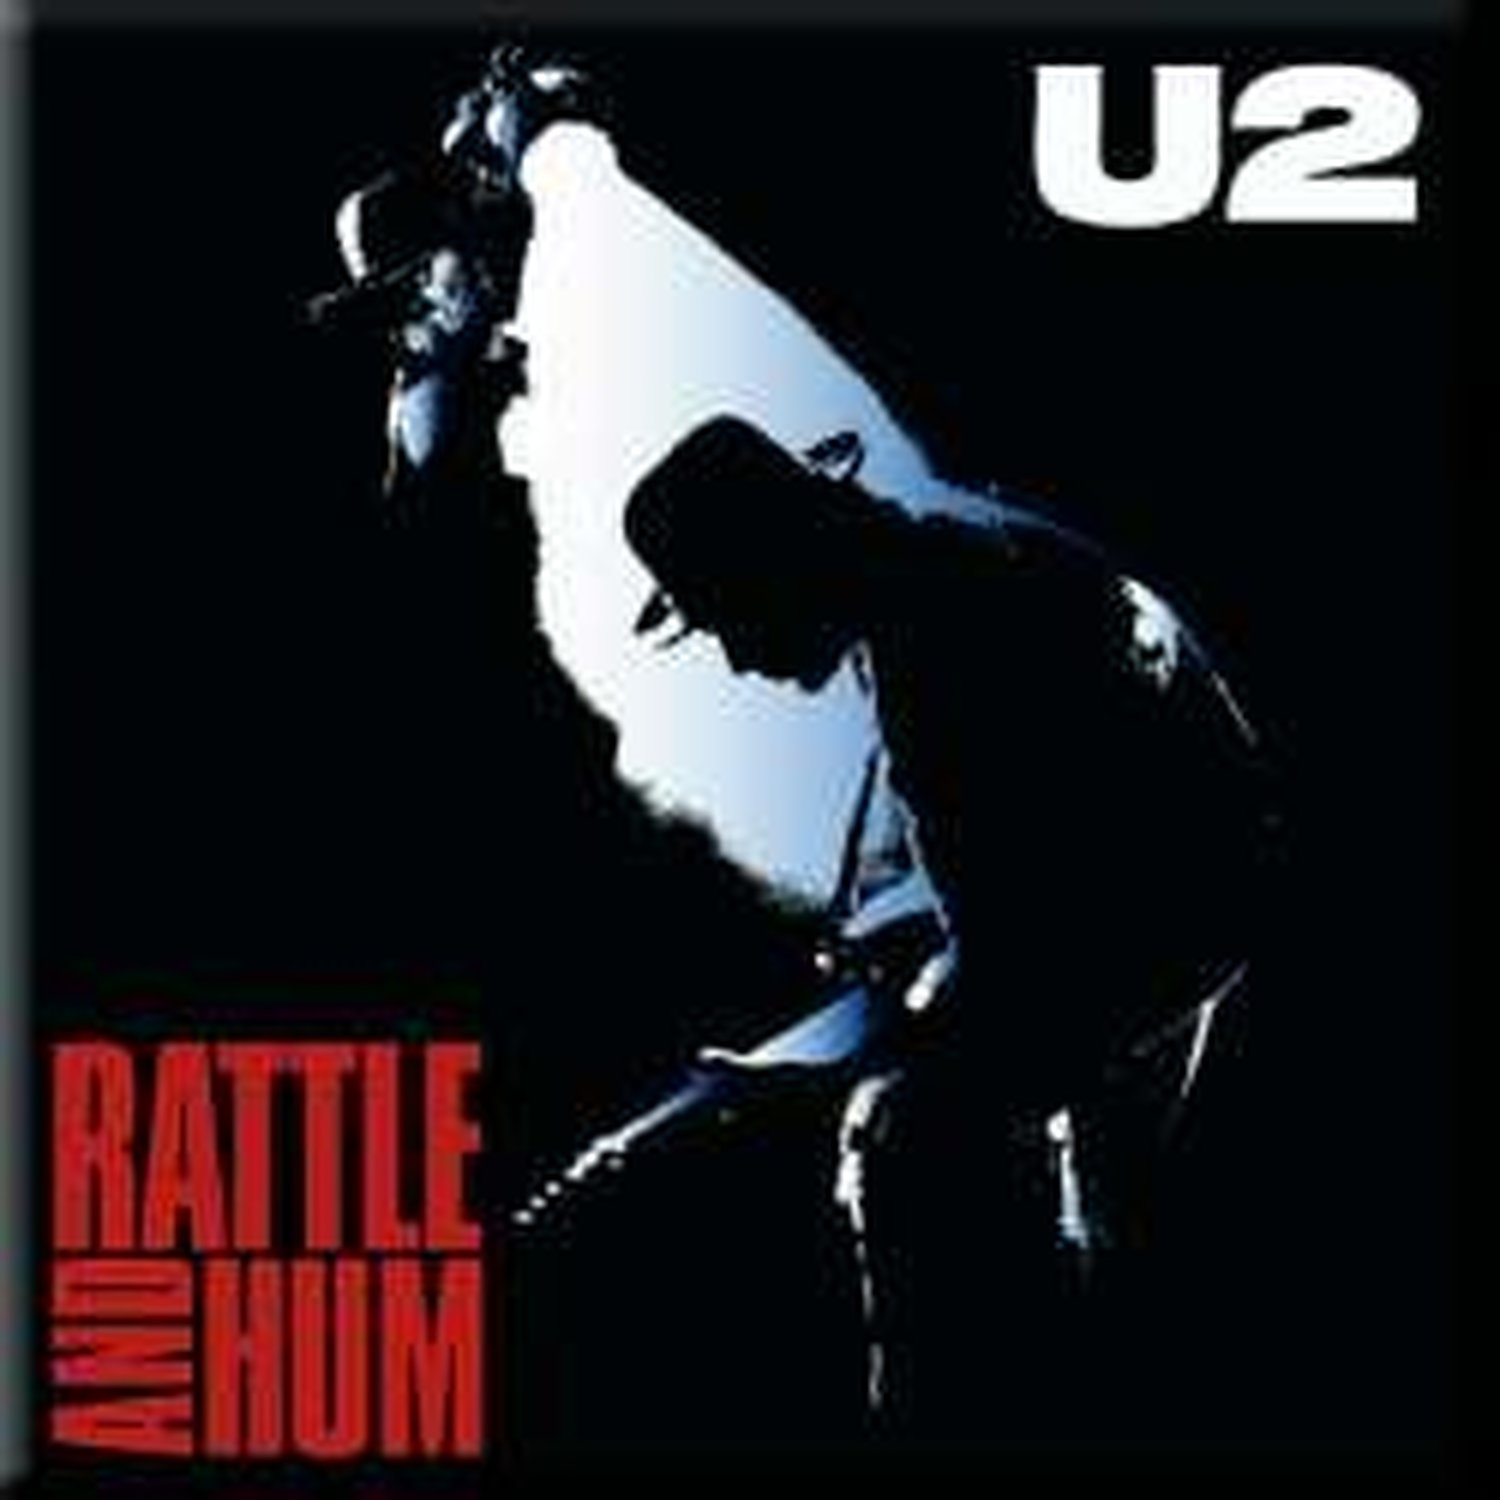 Kitchen Tools And Gadgets U2 Metal Steel Fridge Magnet Rattle And Hum Album Cover